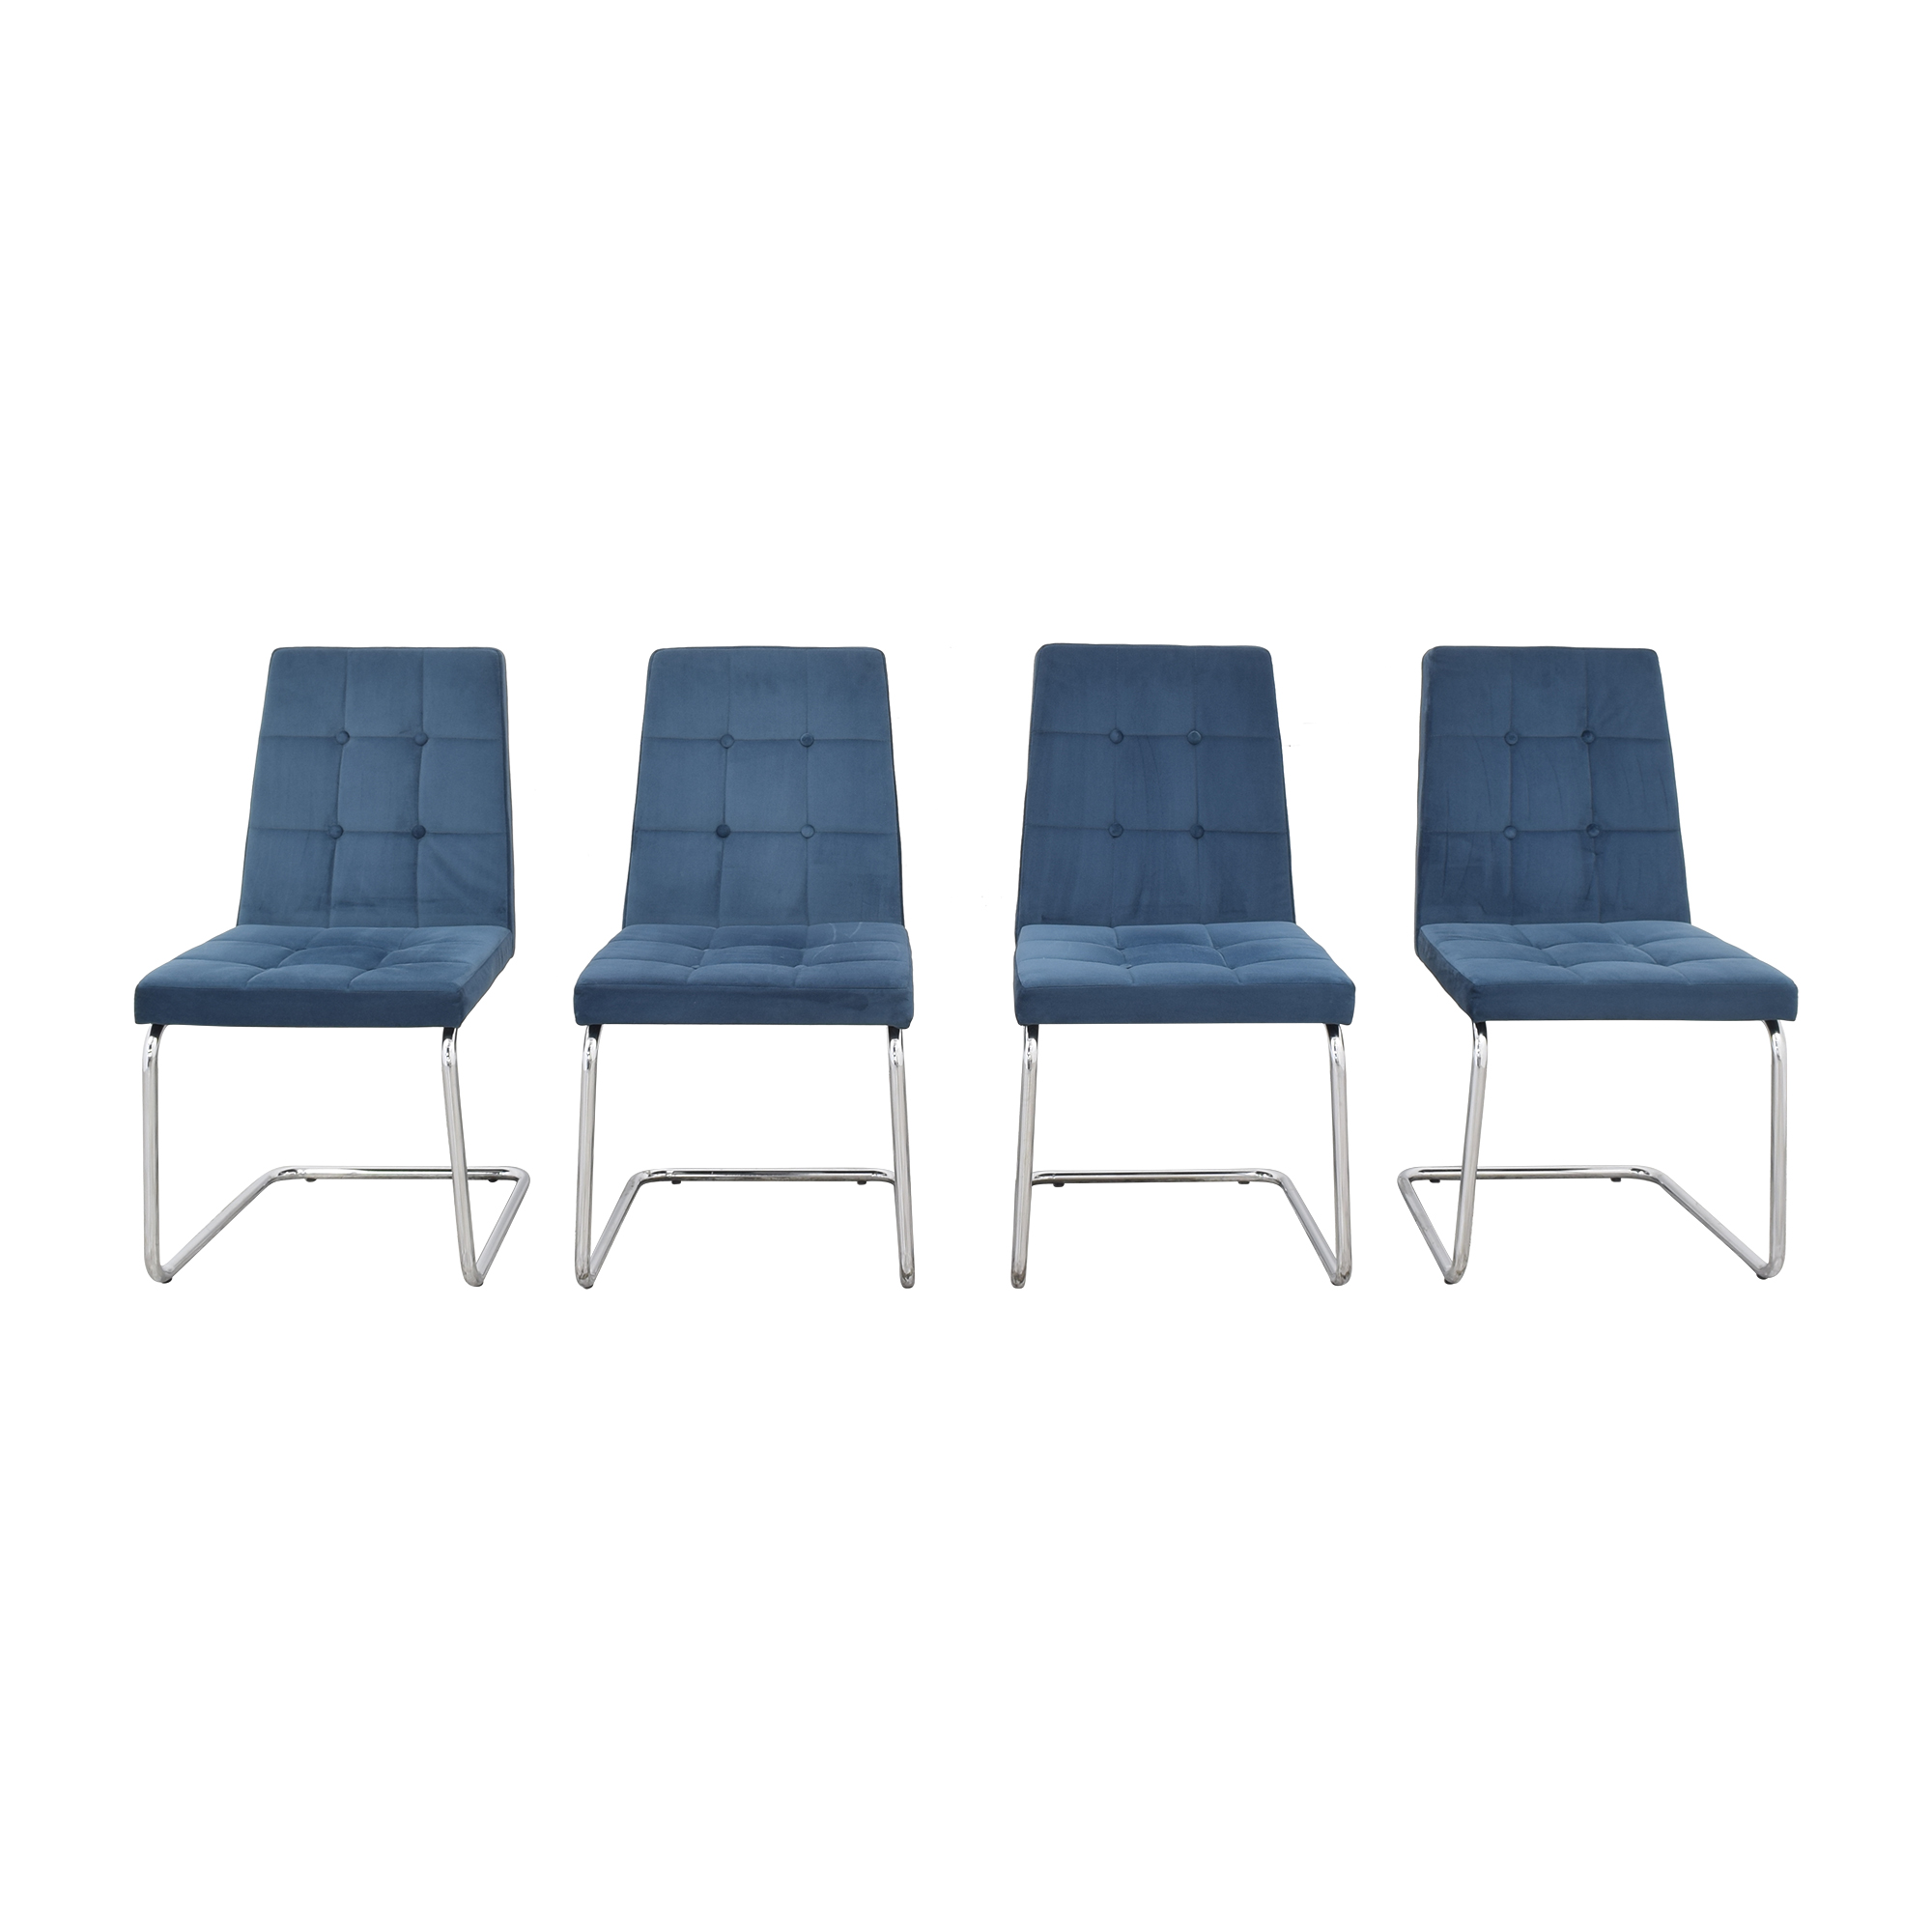 CB2 CB2 Roya Chairs Slate Blue for sale